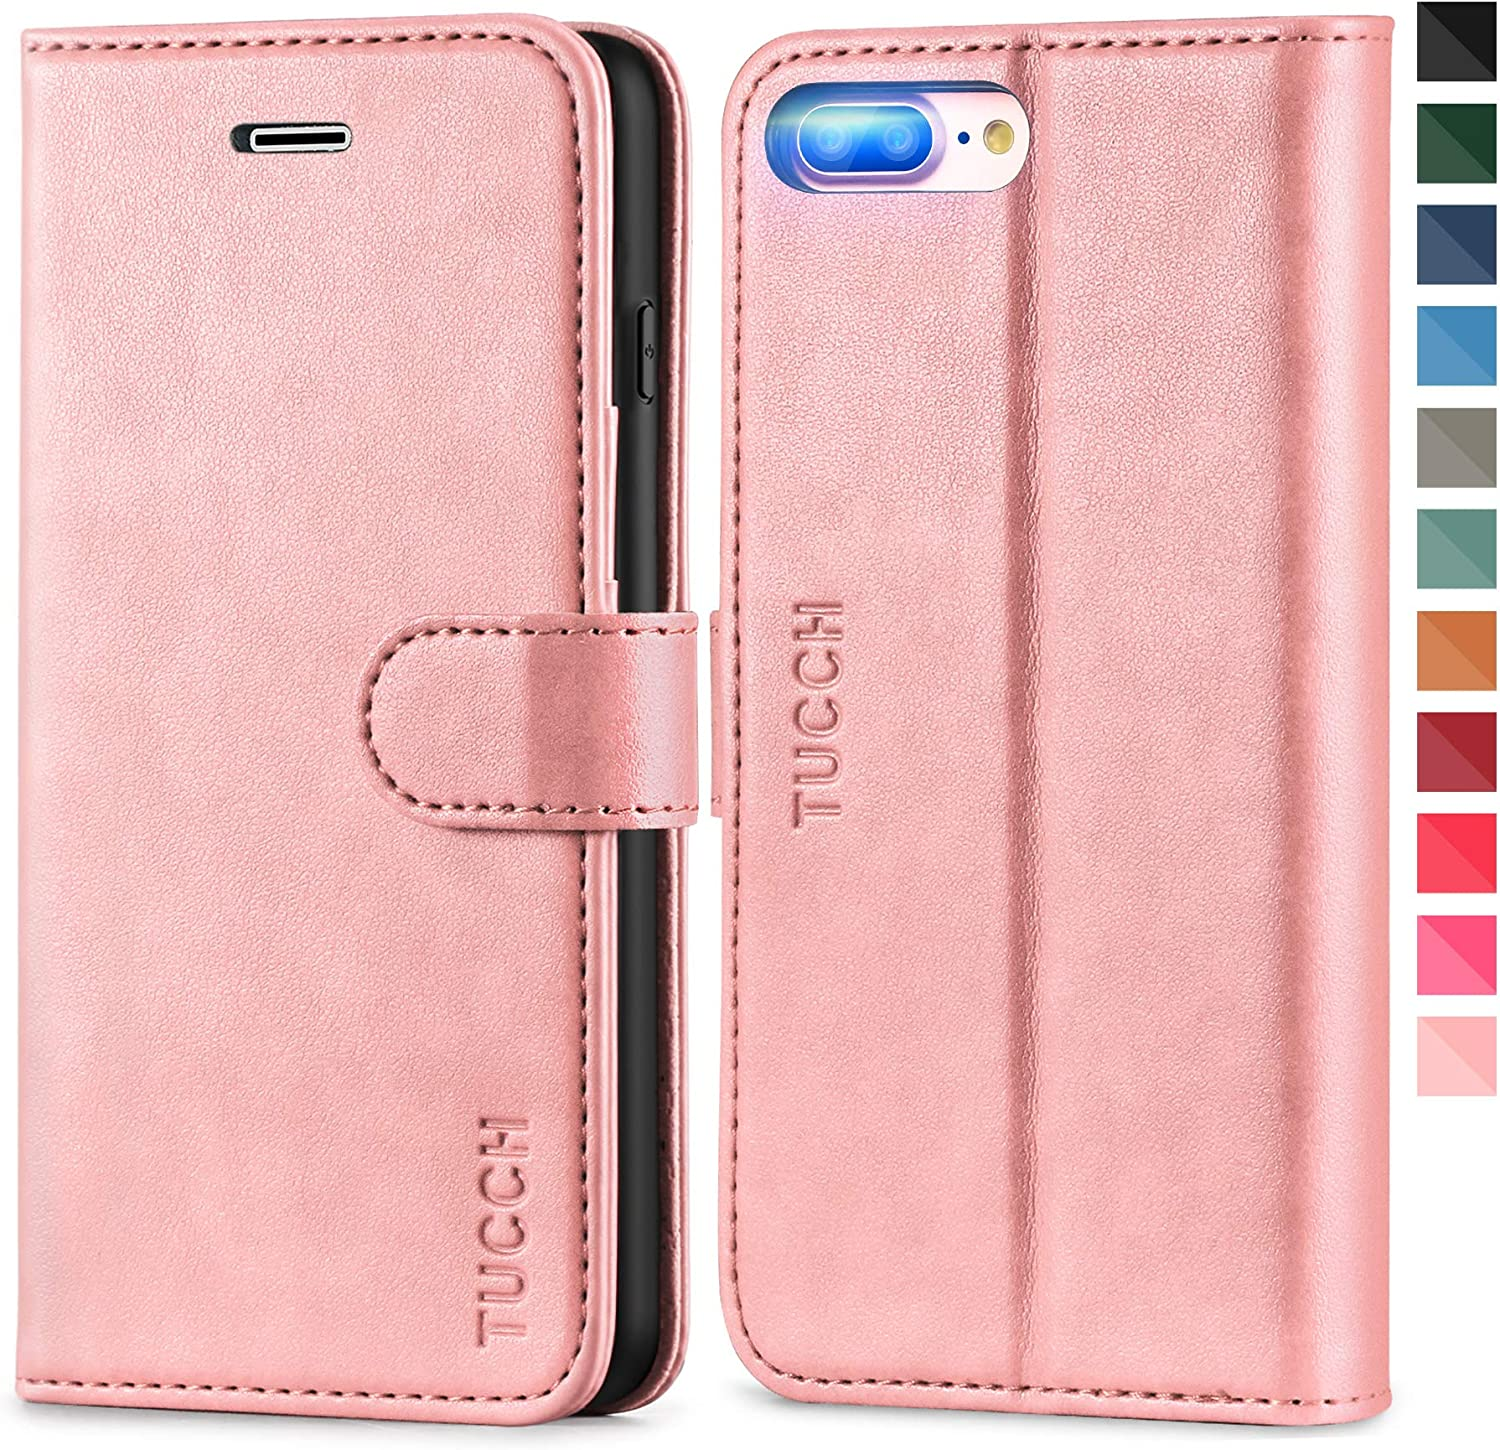 TUCCH iPhone 8 Plus Wallet Case, iPhone 7 Plus Case, Premium PU Leather Flip Case with Card Slot, Stand Magnetic Closure [Shockproof TPU Interior Case] Compatible with iPhone 7/8 Plus, Rose Gold